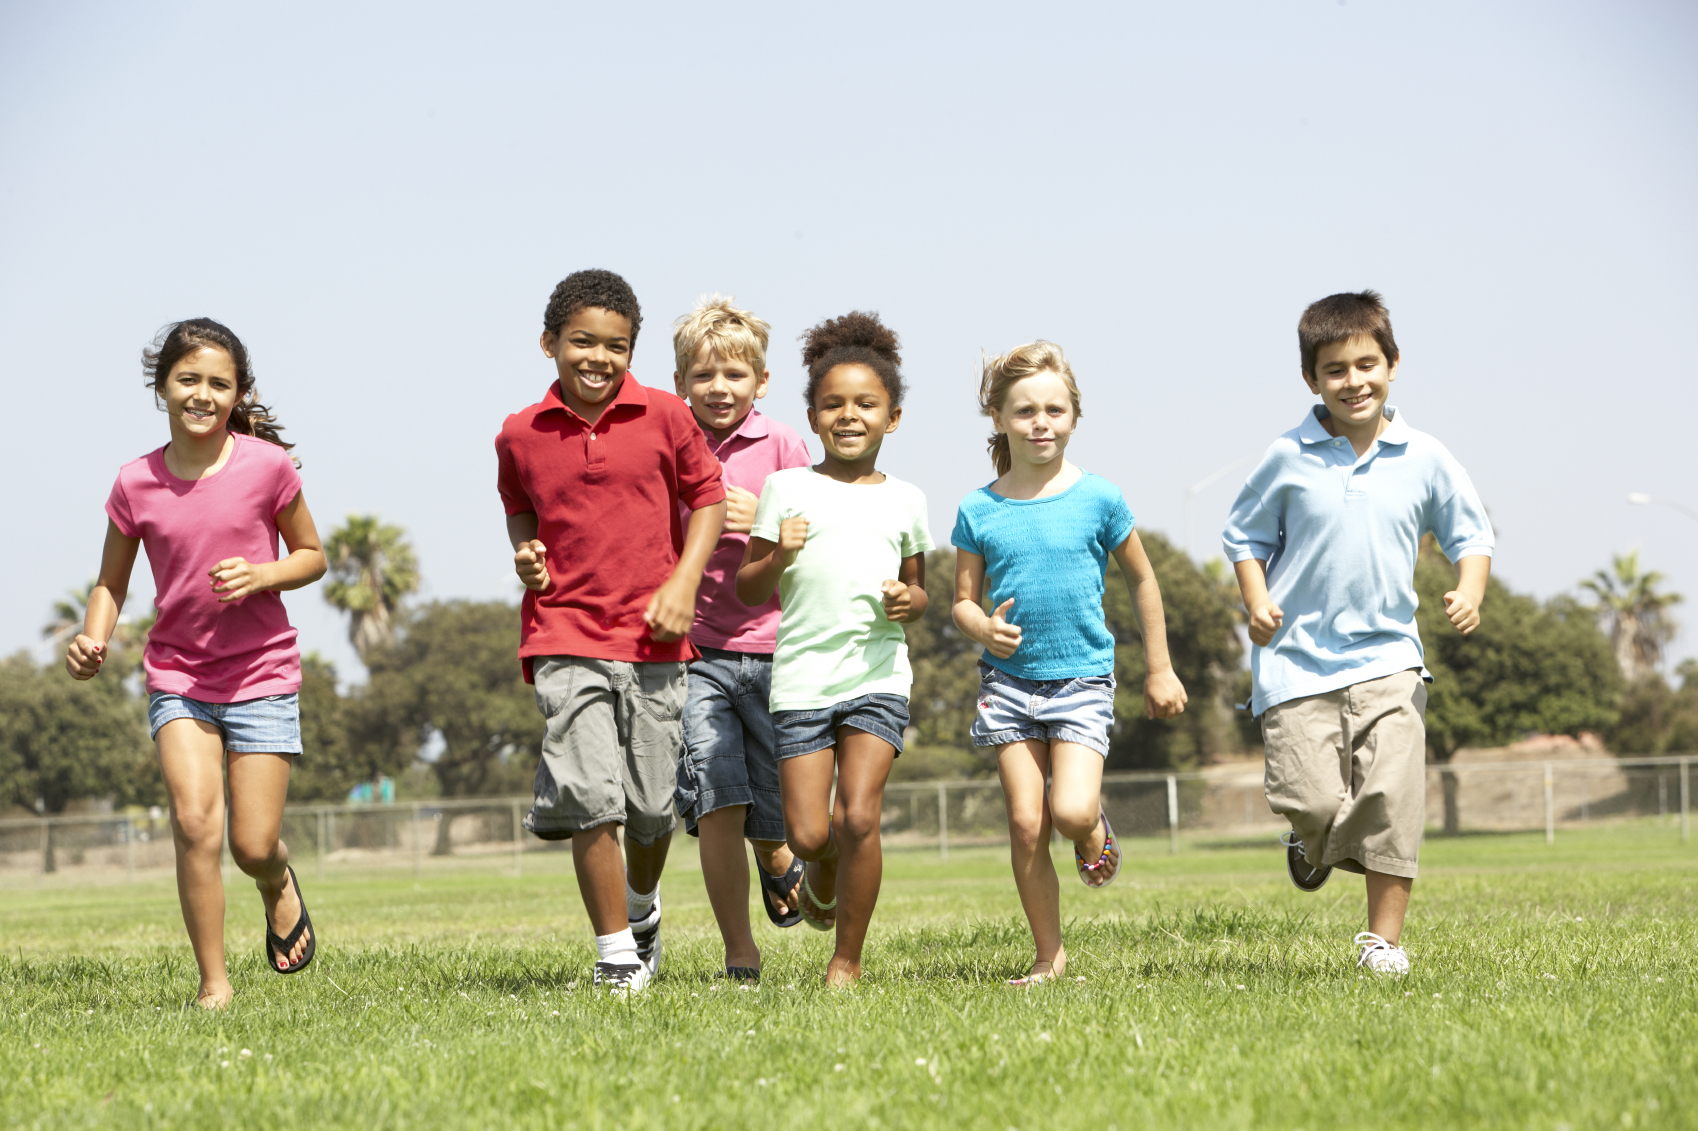 """help with obesity for low income families A 2006 study by the colorado health foundation titled the """"income, education and obesity"""" found that 25% of colorado children living in low-income households with an average income of $25,000 or less were obese compared to 8% of the children."""